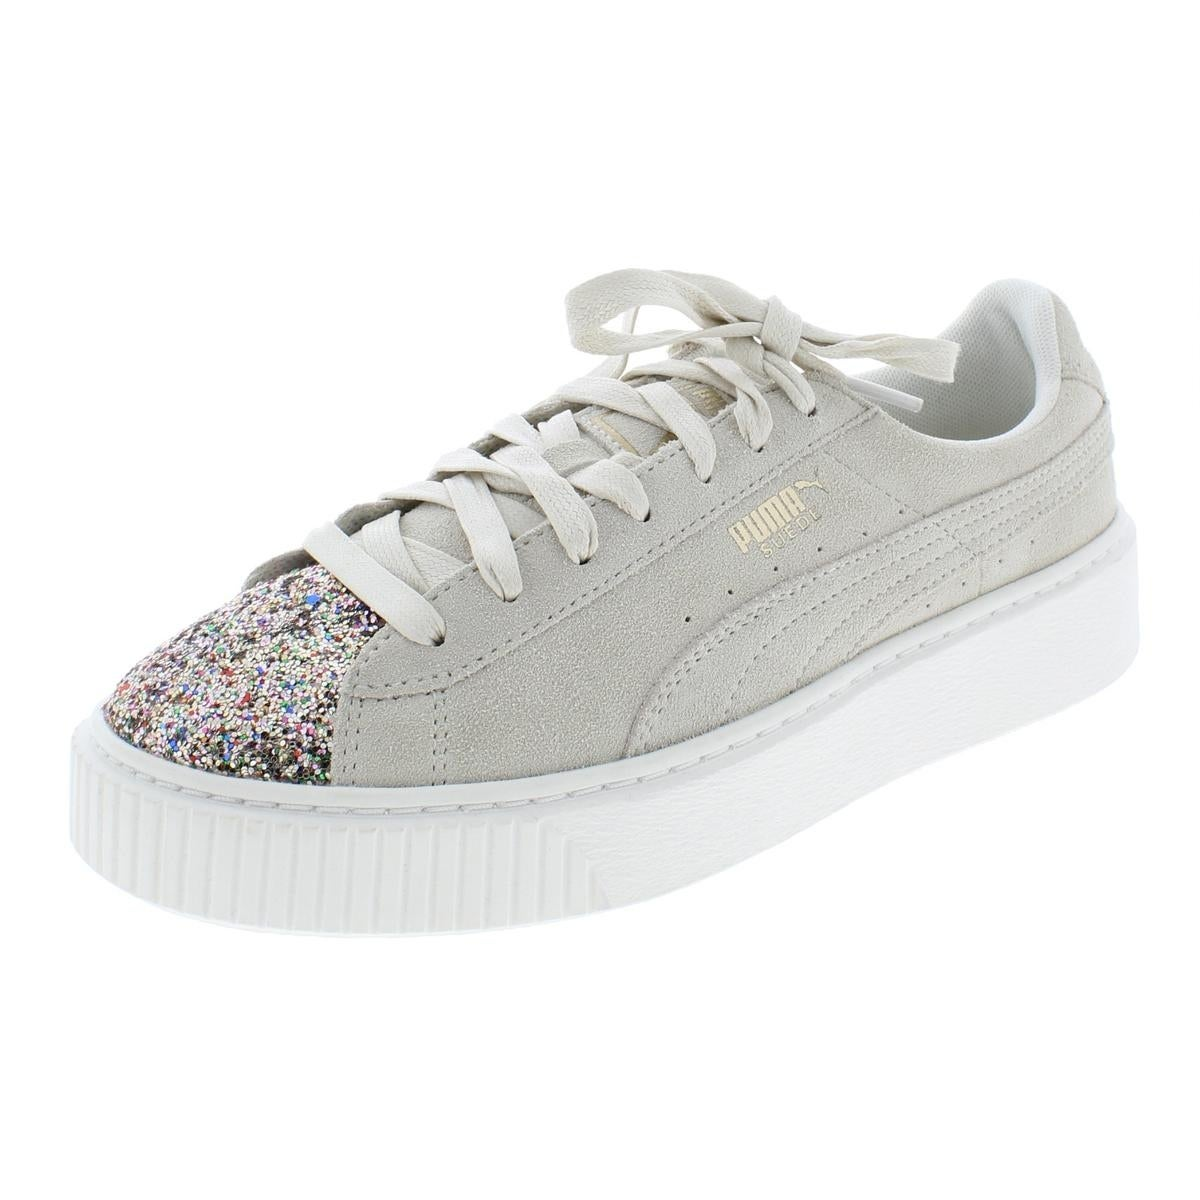 e2757777f75b Shop Puma Womens Crushed Gem Casual Shoes Suede Glitter - Free Shipping  Today - Overstock - 24104411